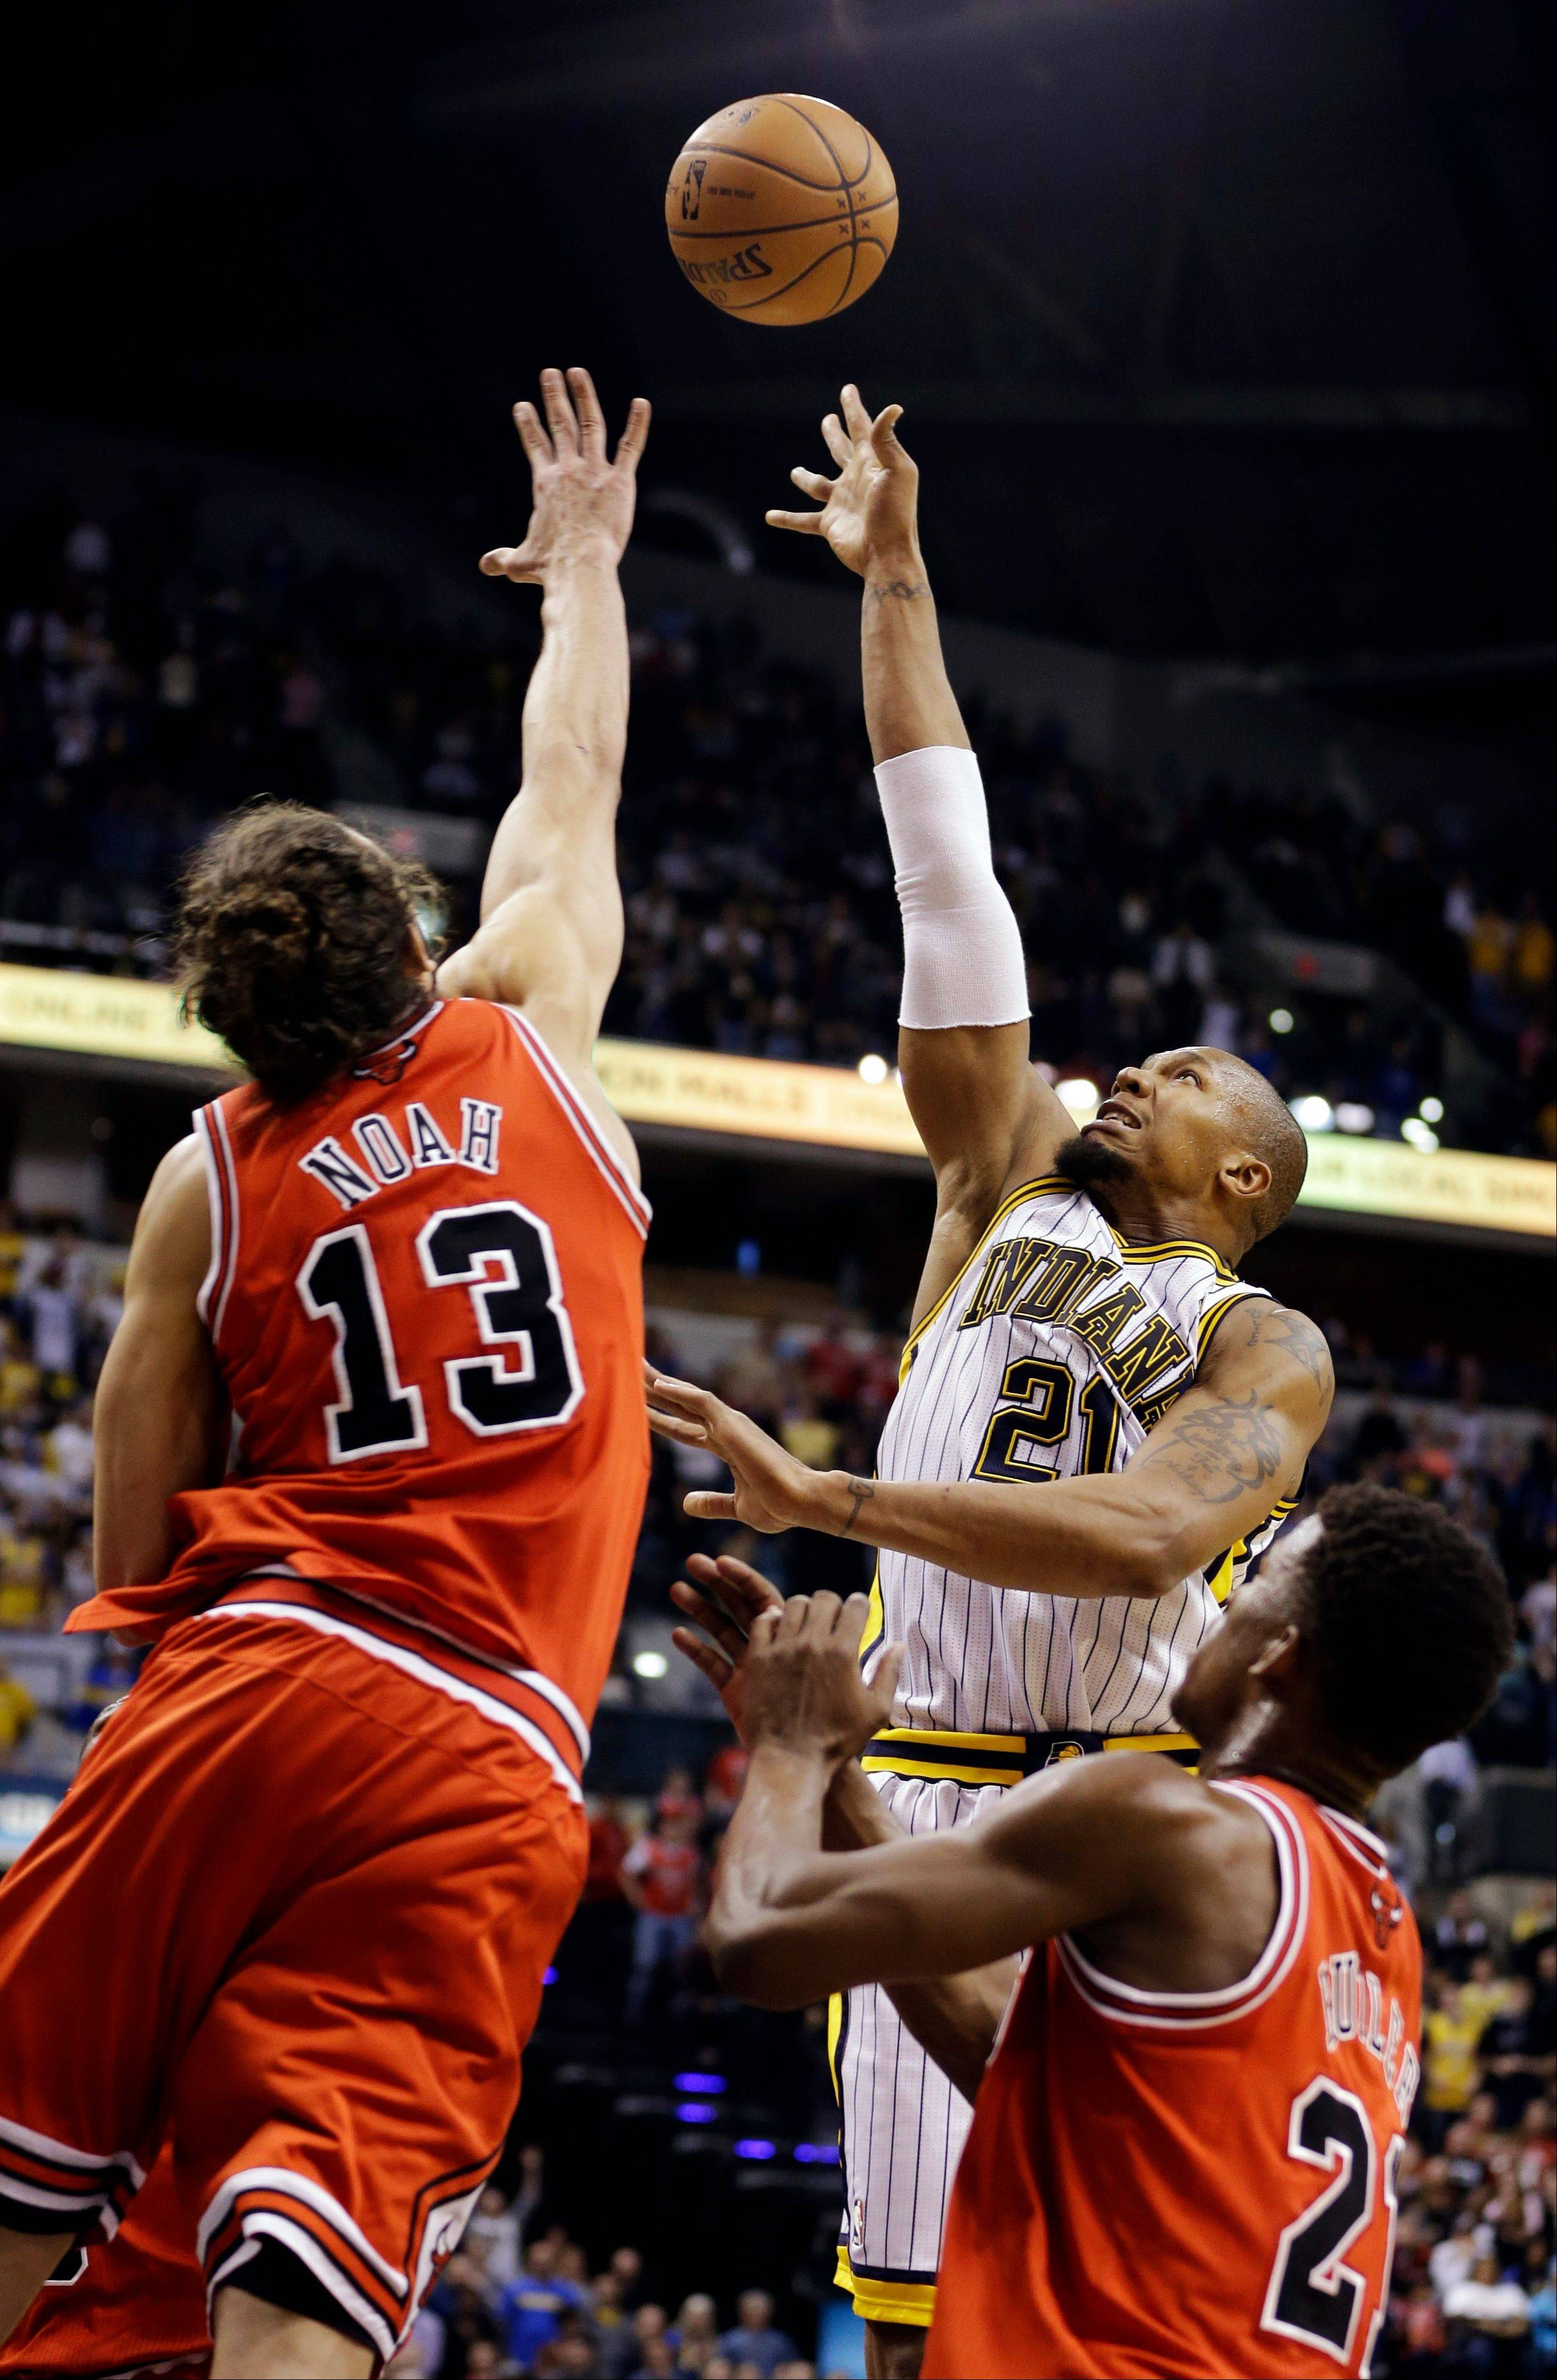 Indiana Pacers' David West (21) shoots against Chicago Bulls' Joakim Noah (13) and Jimmy Butler during the second half of an NBA basketball game, Sunday, March 3, 2013, in Indianapolis. Indiana won 97-92.